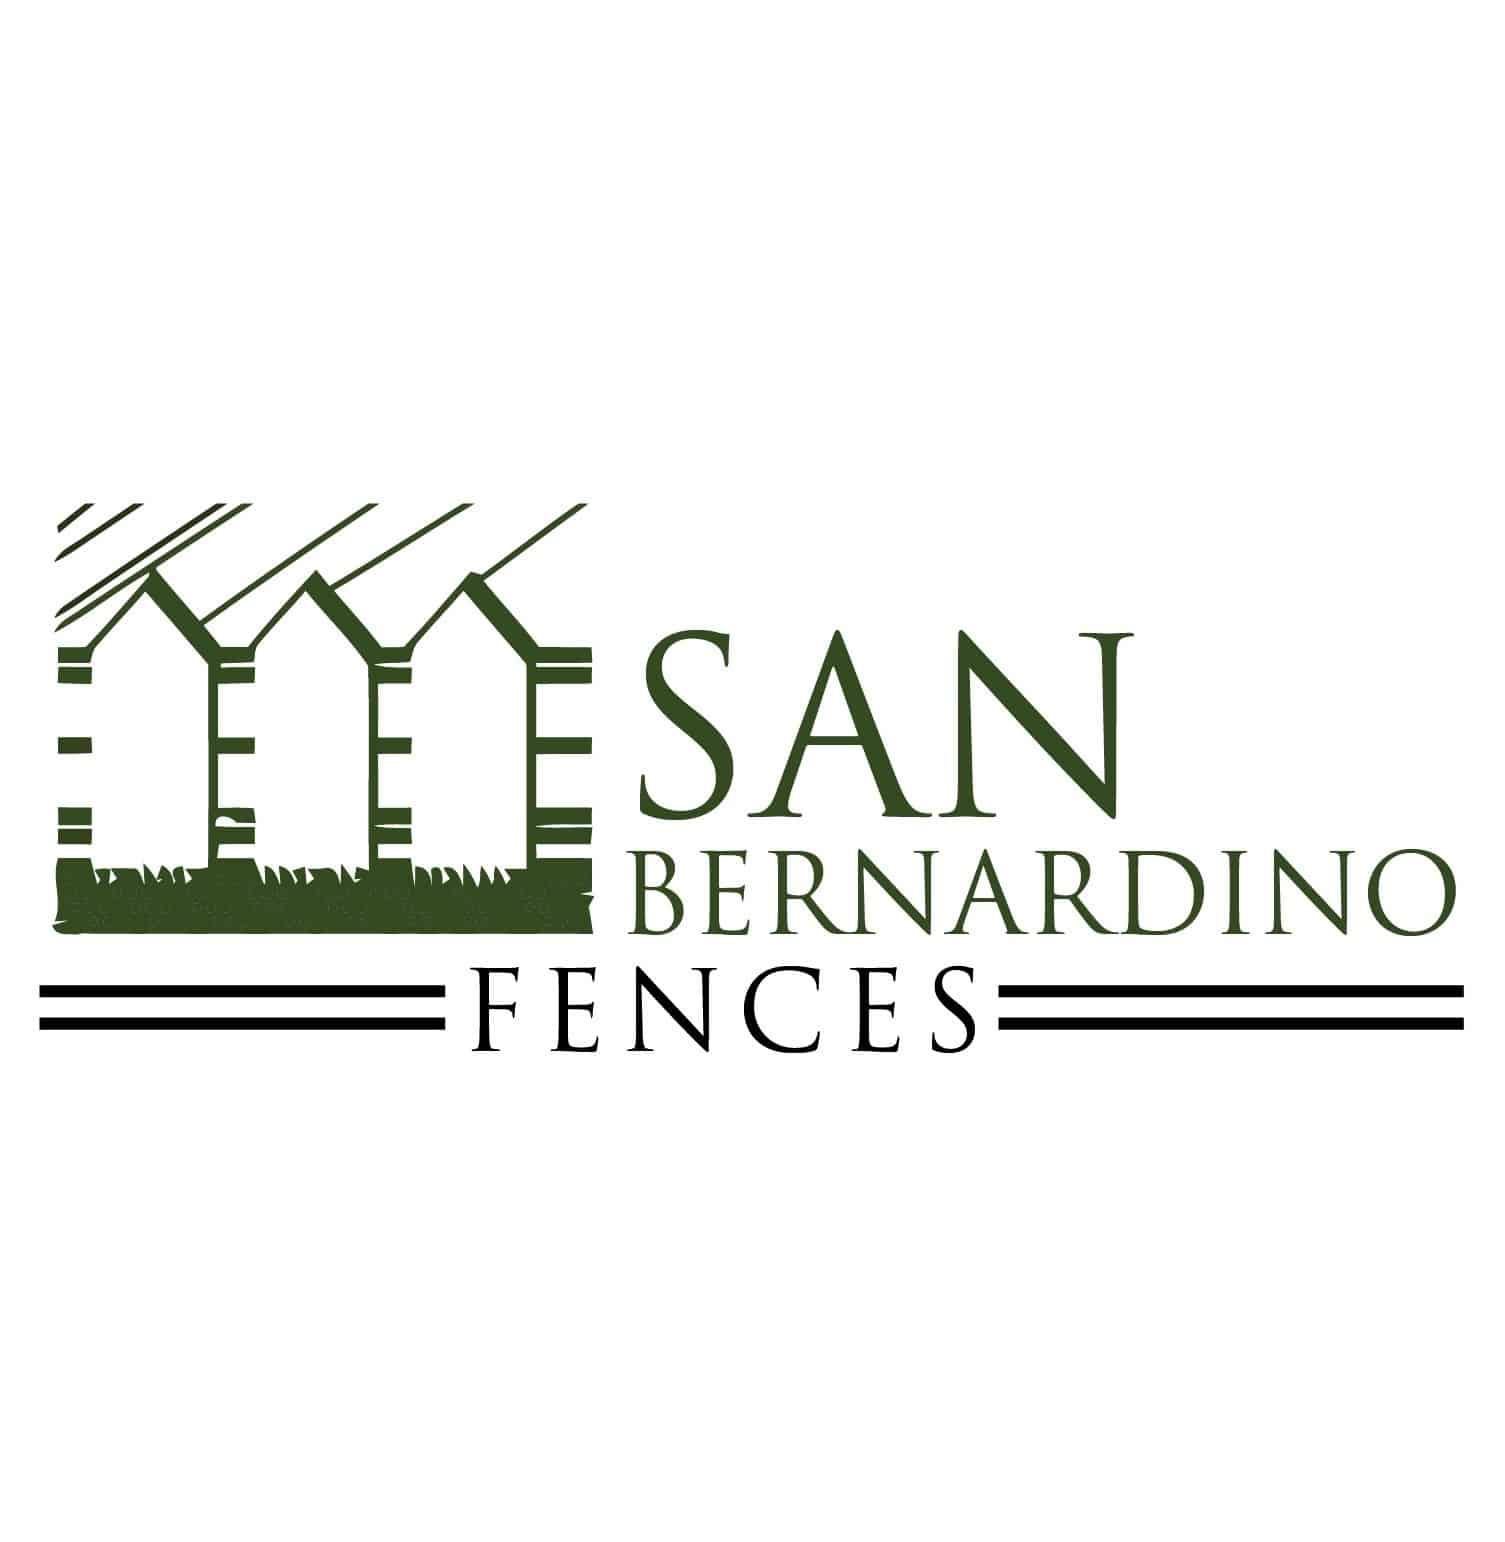 San Bernardino Fences square